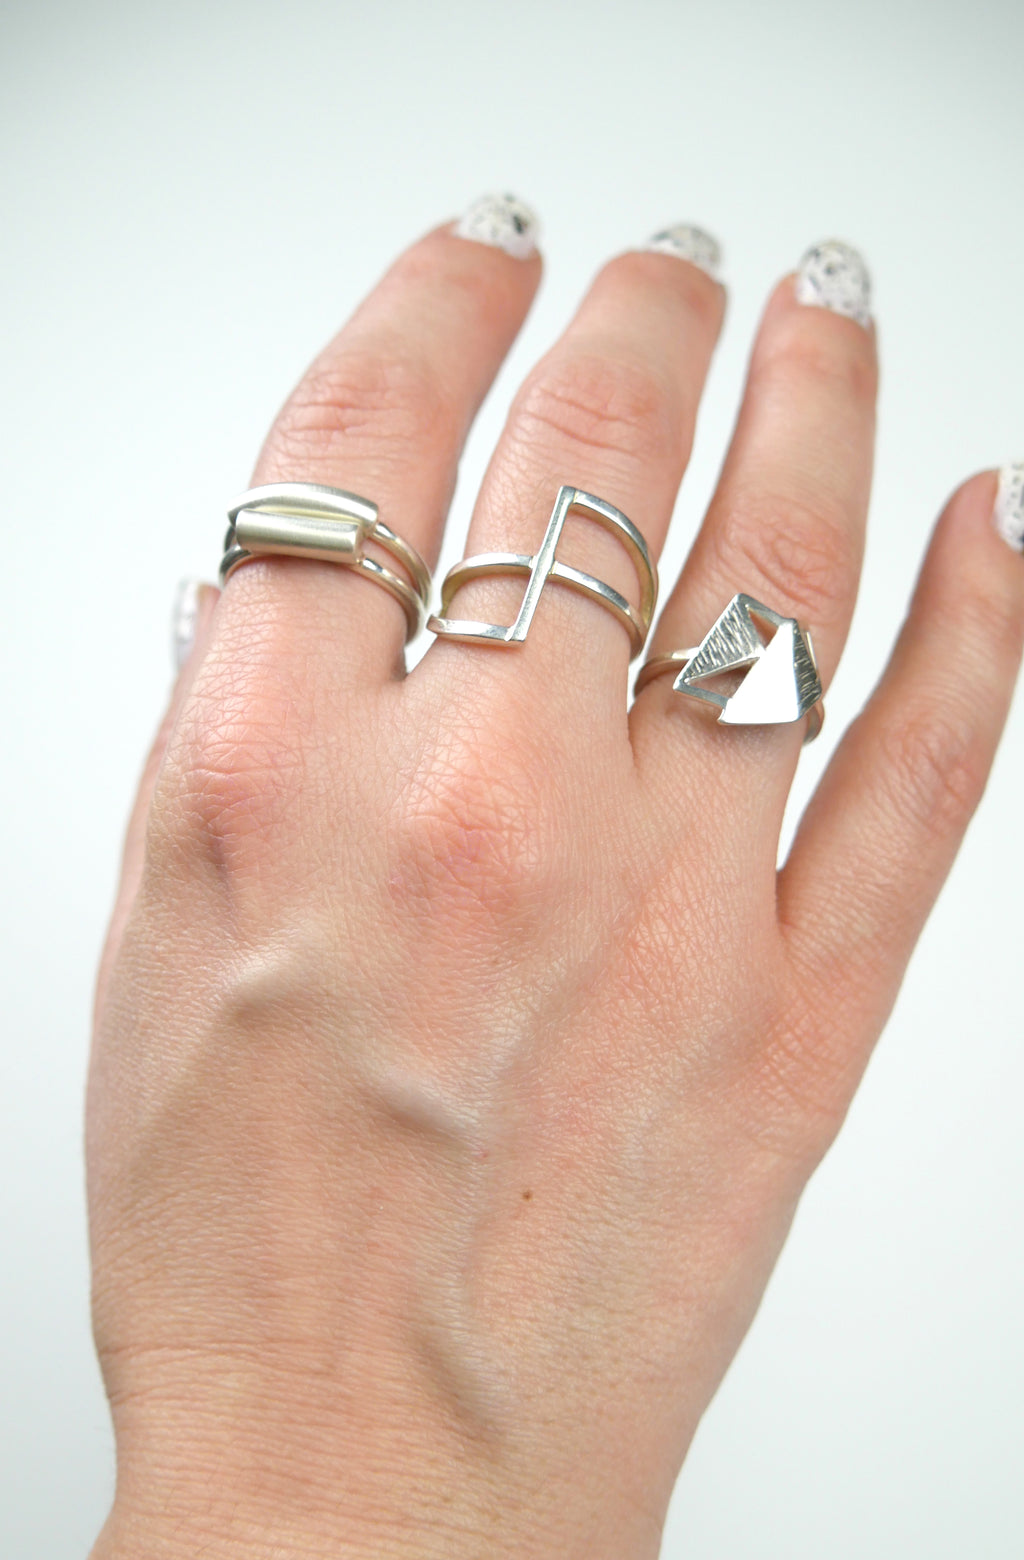 Straight line, minimalist sterling silver ring